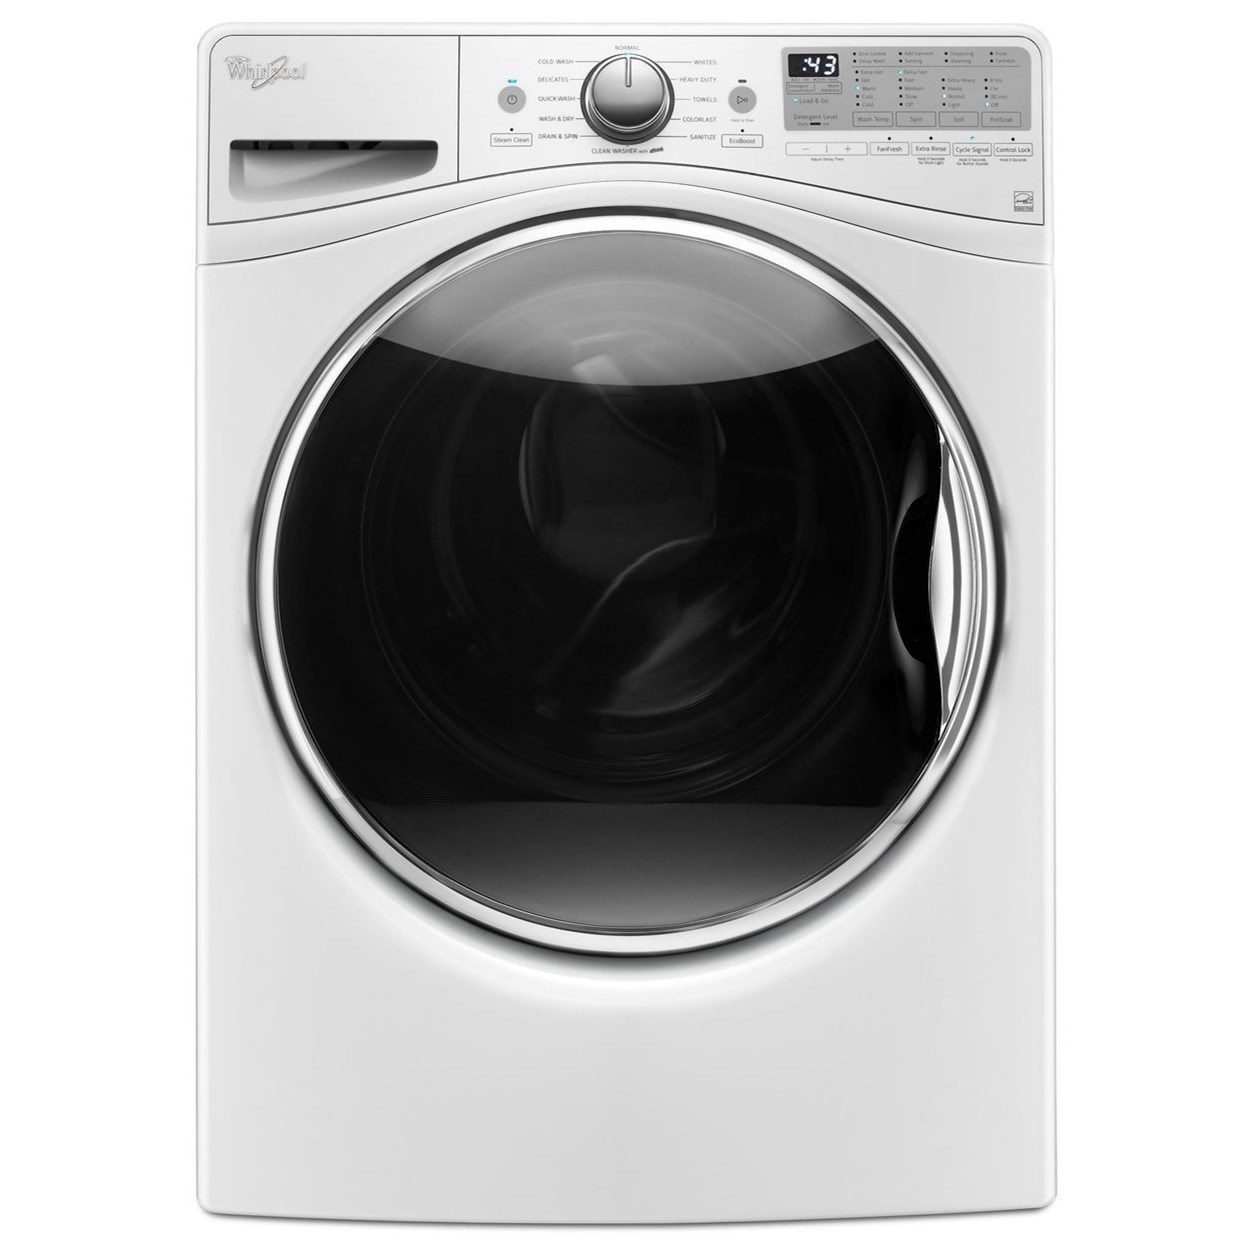 Whirlpool Front Load Washers 4.2 cu. ft. Front Load Washer - Item Number: WFW9290FW